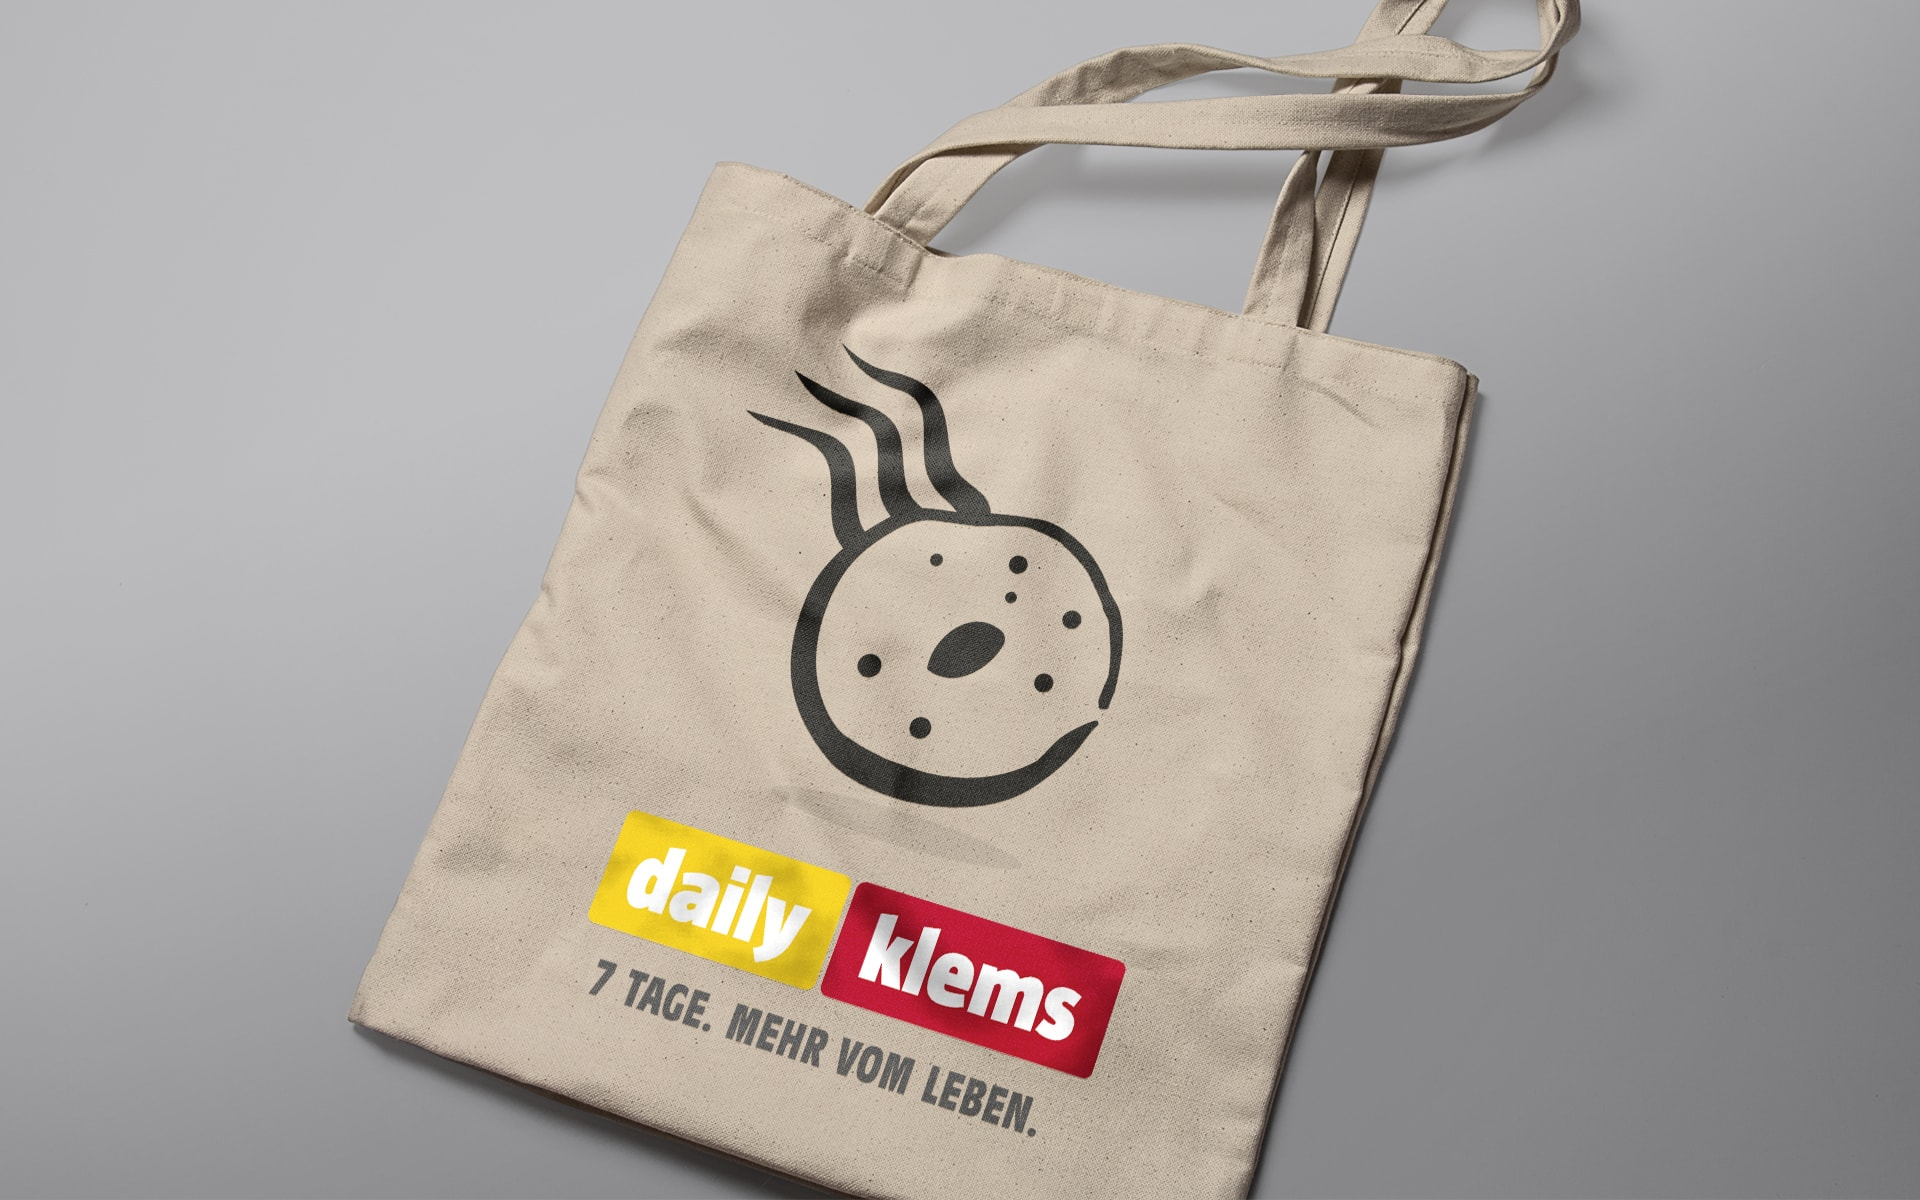 Daily-Klems Jutetasche